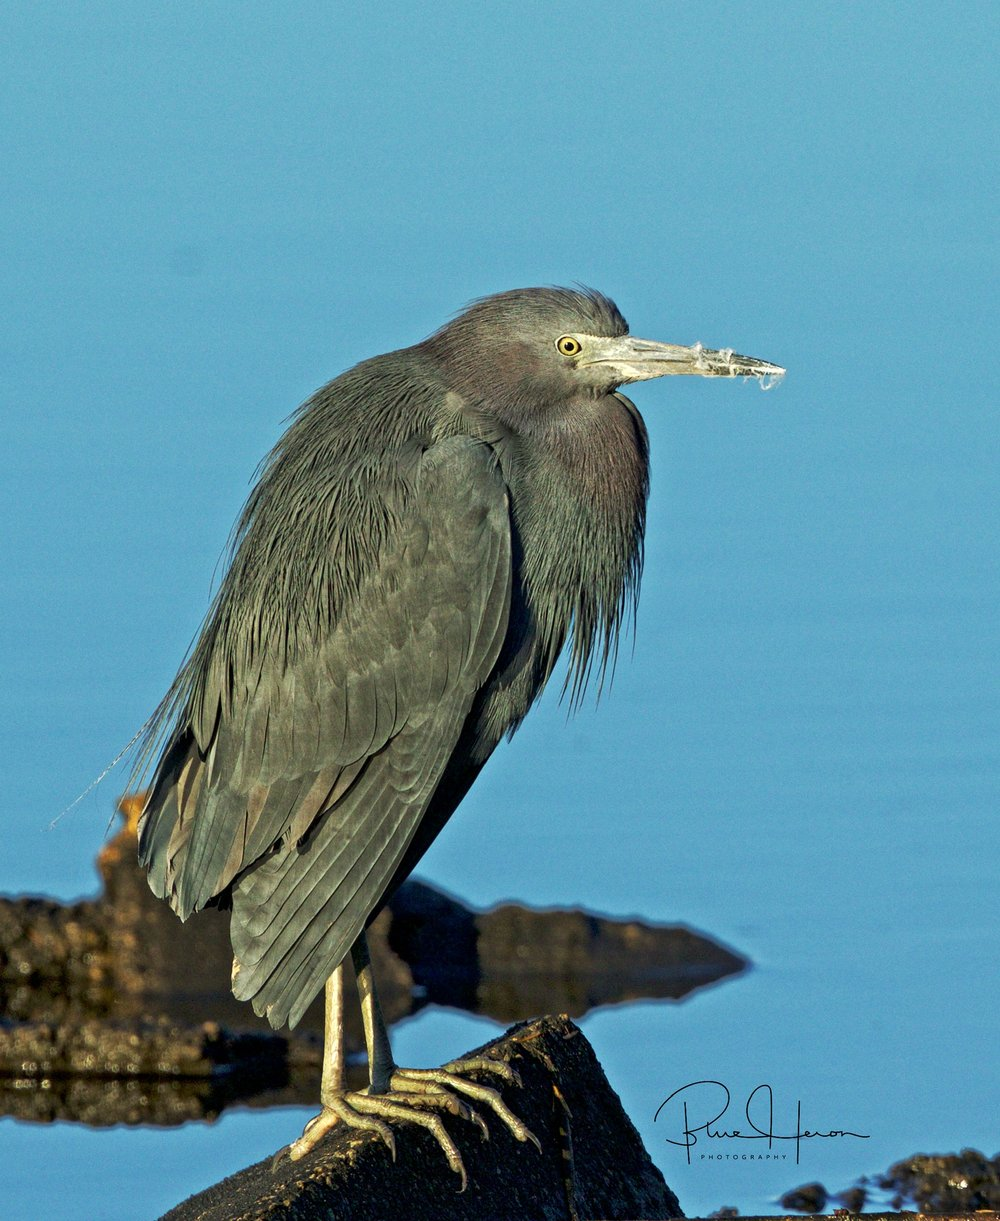 Broward Bob, the Little Blue Heron seems a bit stiff..